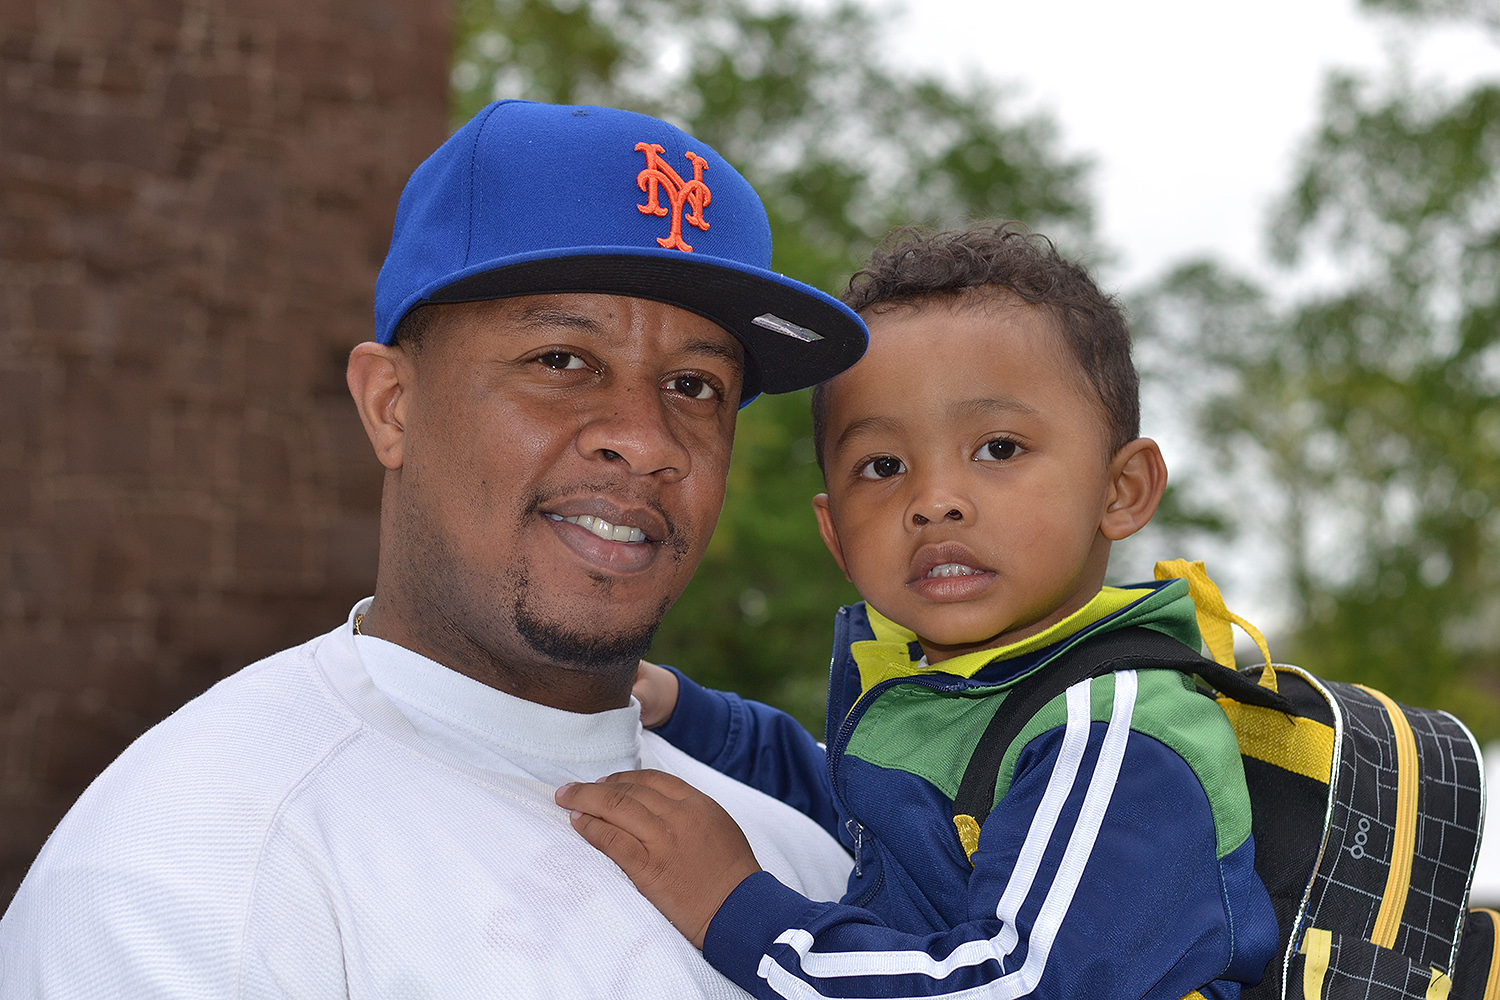 Chavez Sears '00 (Middletown, Conn.) and his son, Telvin